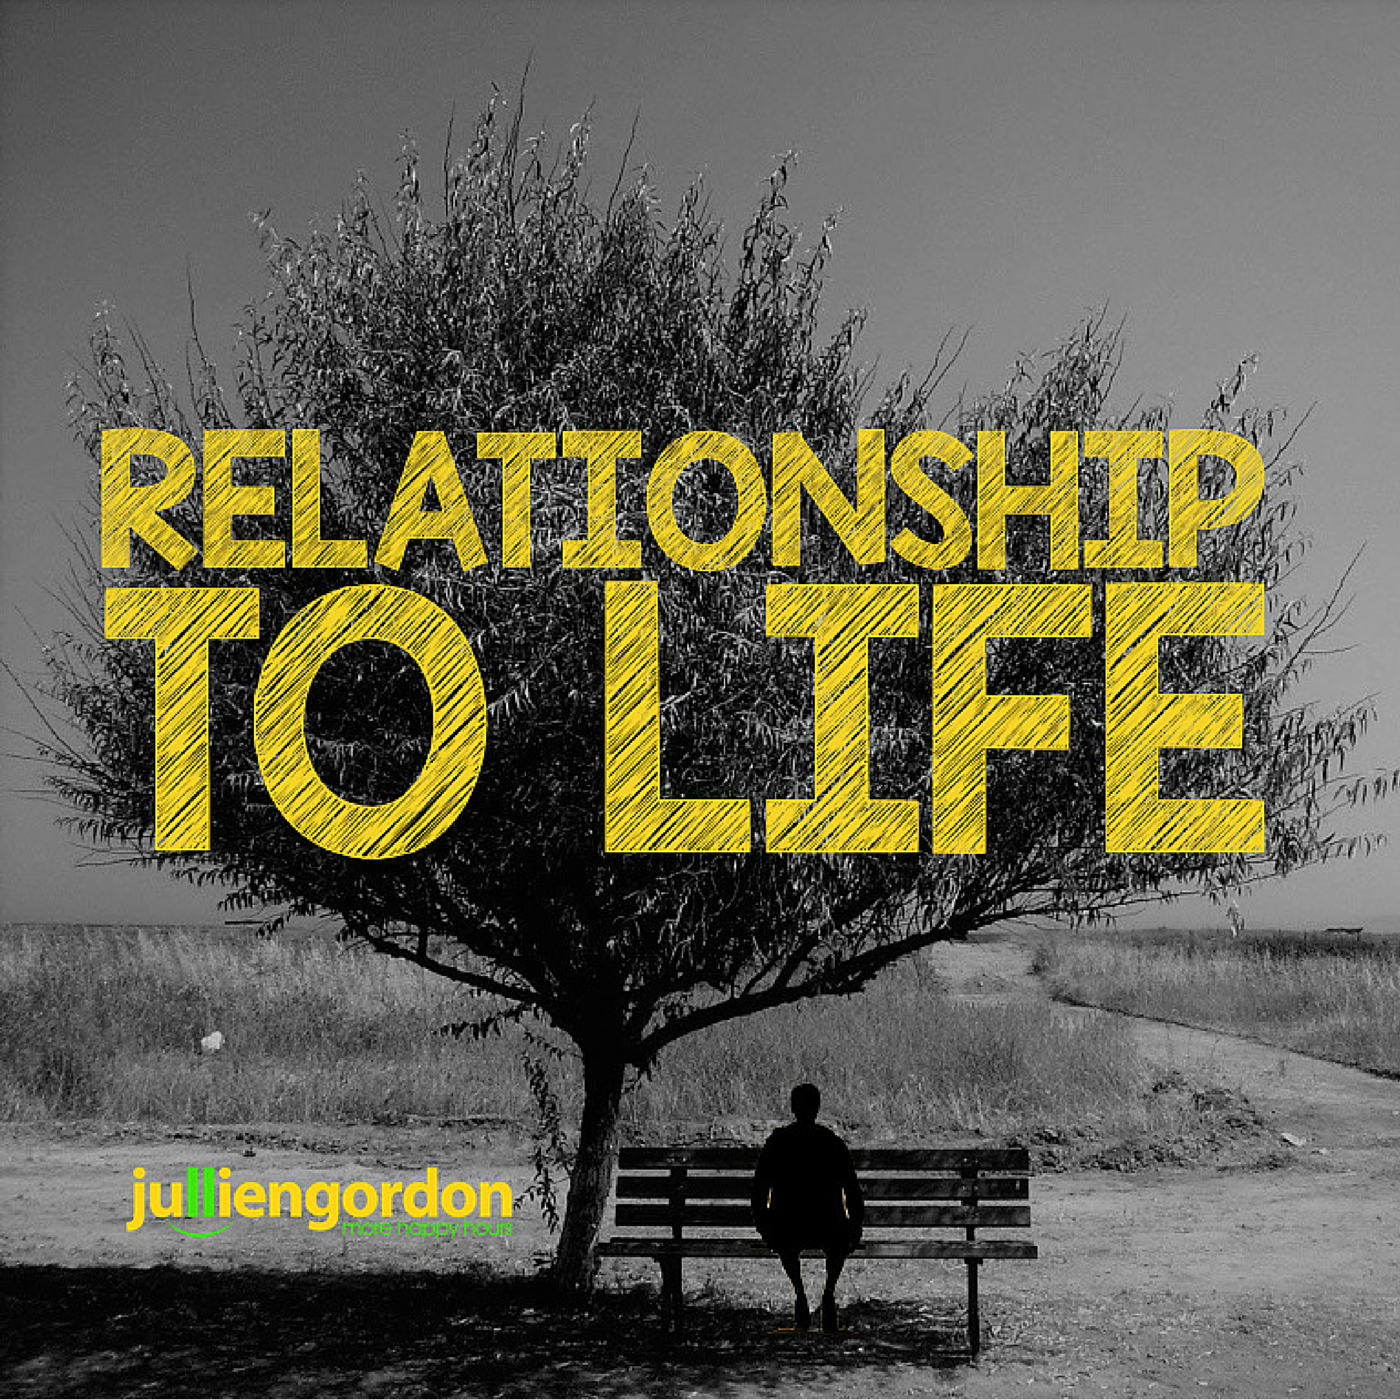 Relationship To Life with Jullien Gordon